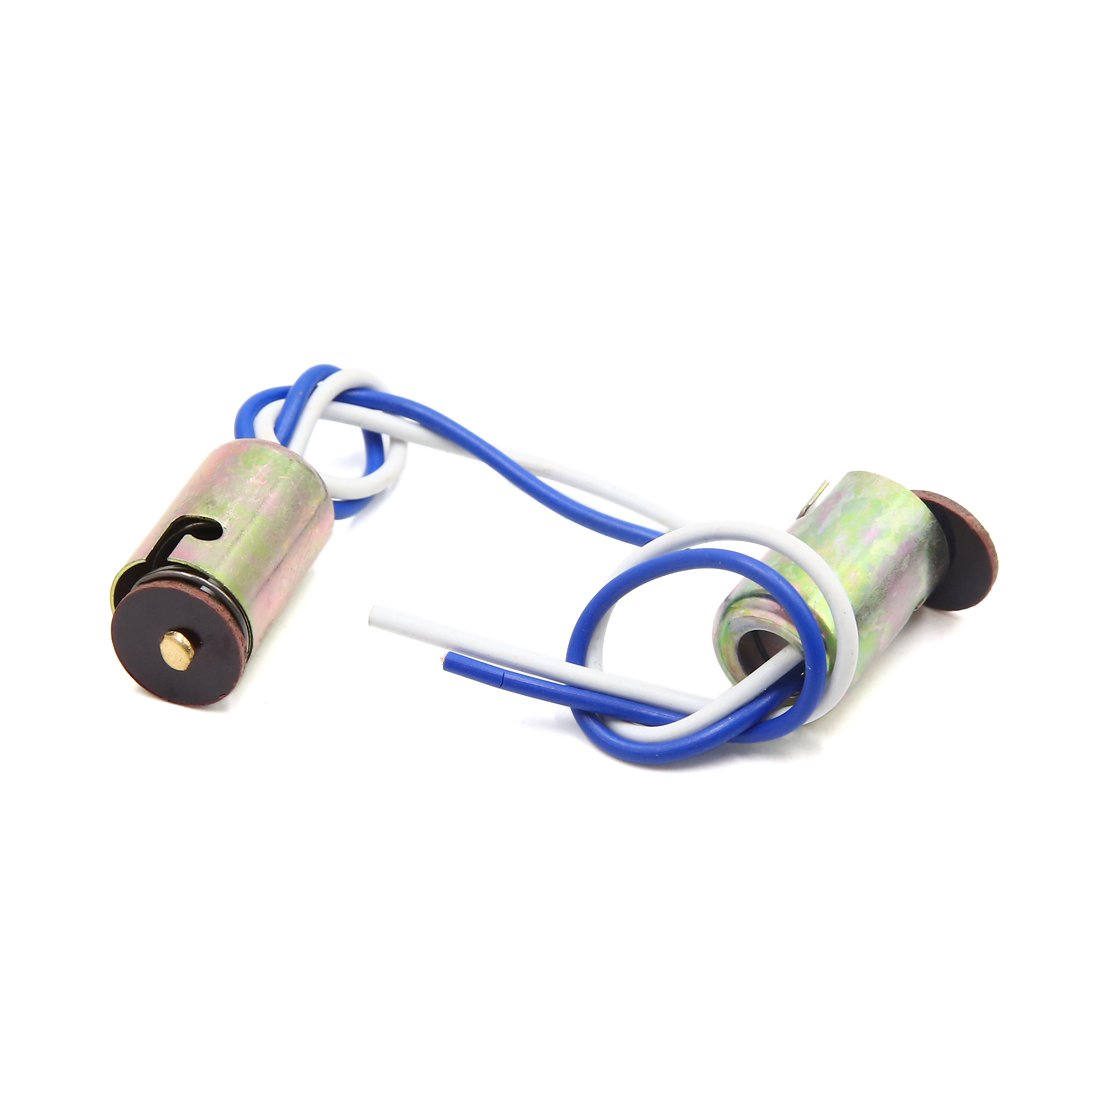 uxcell 2pcs 1156 1141 S25 LED Turn Signal Light Bulb Motorcycle Extension Wire Socket a18040200ux0109